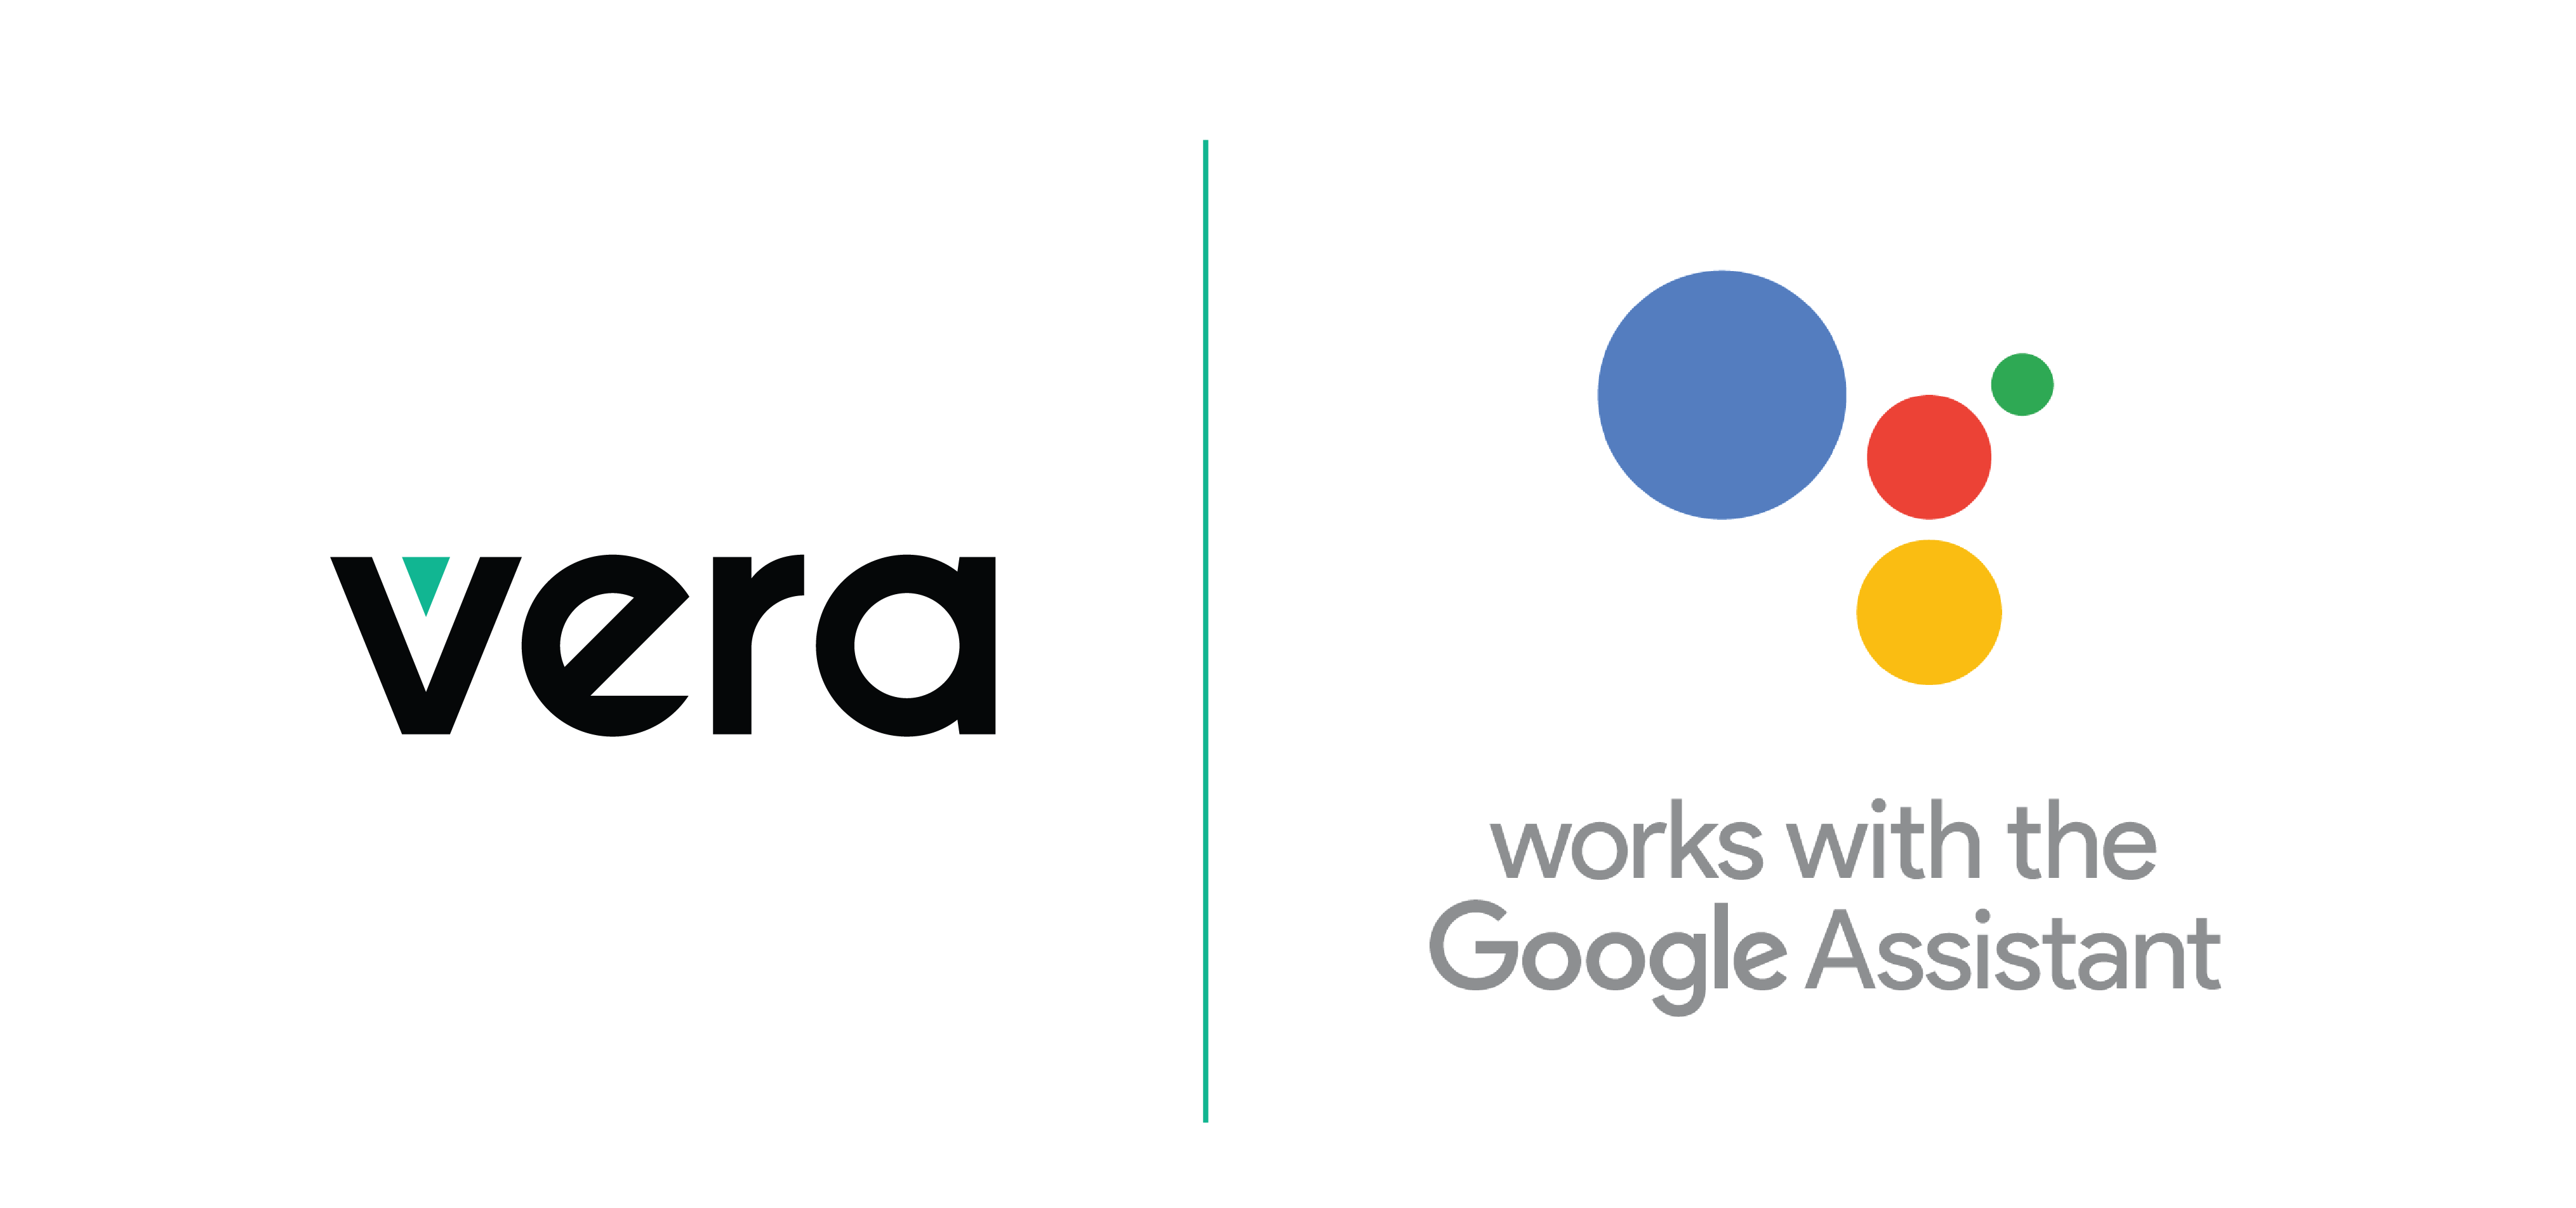 Home Sweet Google Home! Vera's Native Integration with Google Assistant